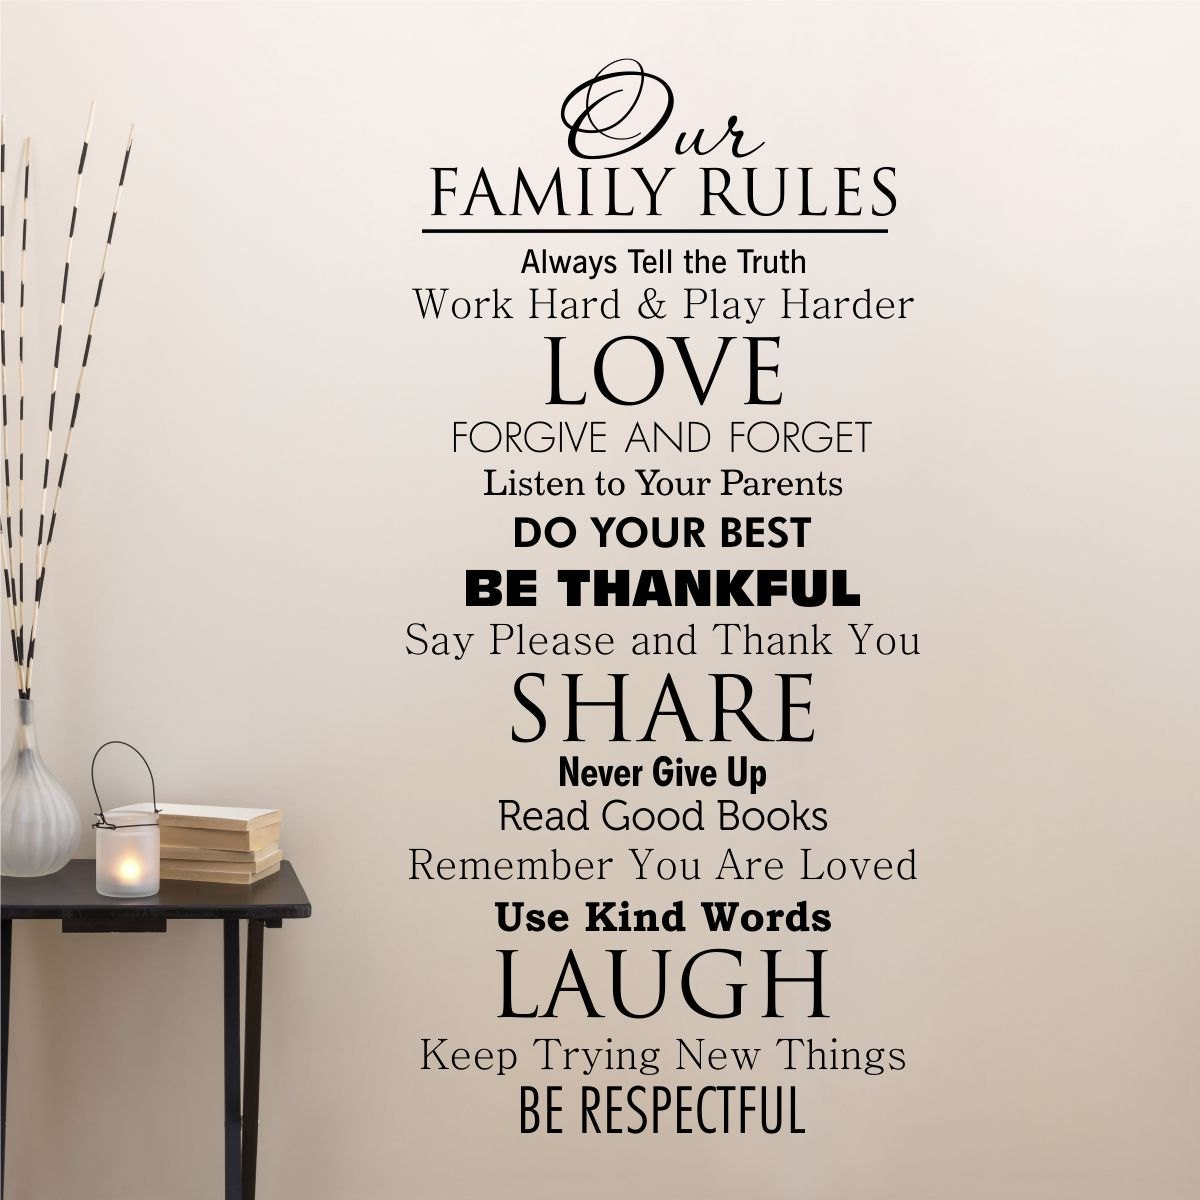 amazon com ditooms family quotes wall decal our family house amazon com ditooms family quotes wall decal our family house rules home love do your best wall art vinyl decal for room decor home kitchen